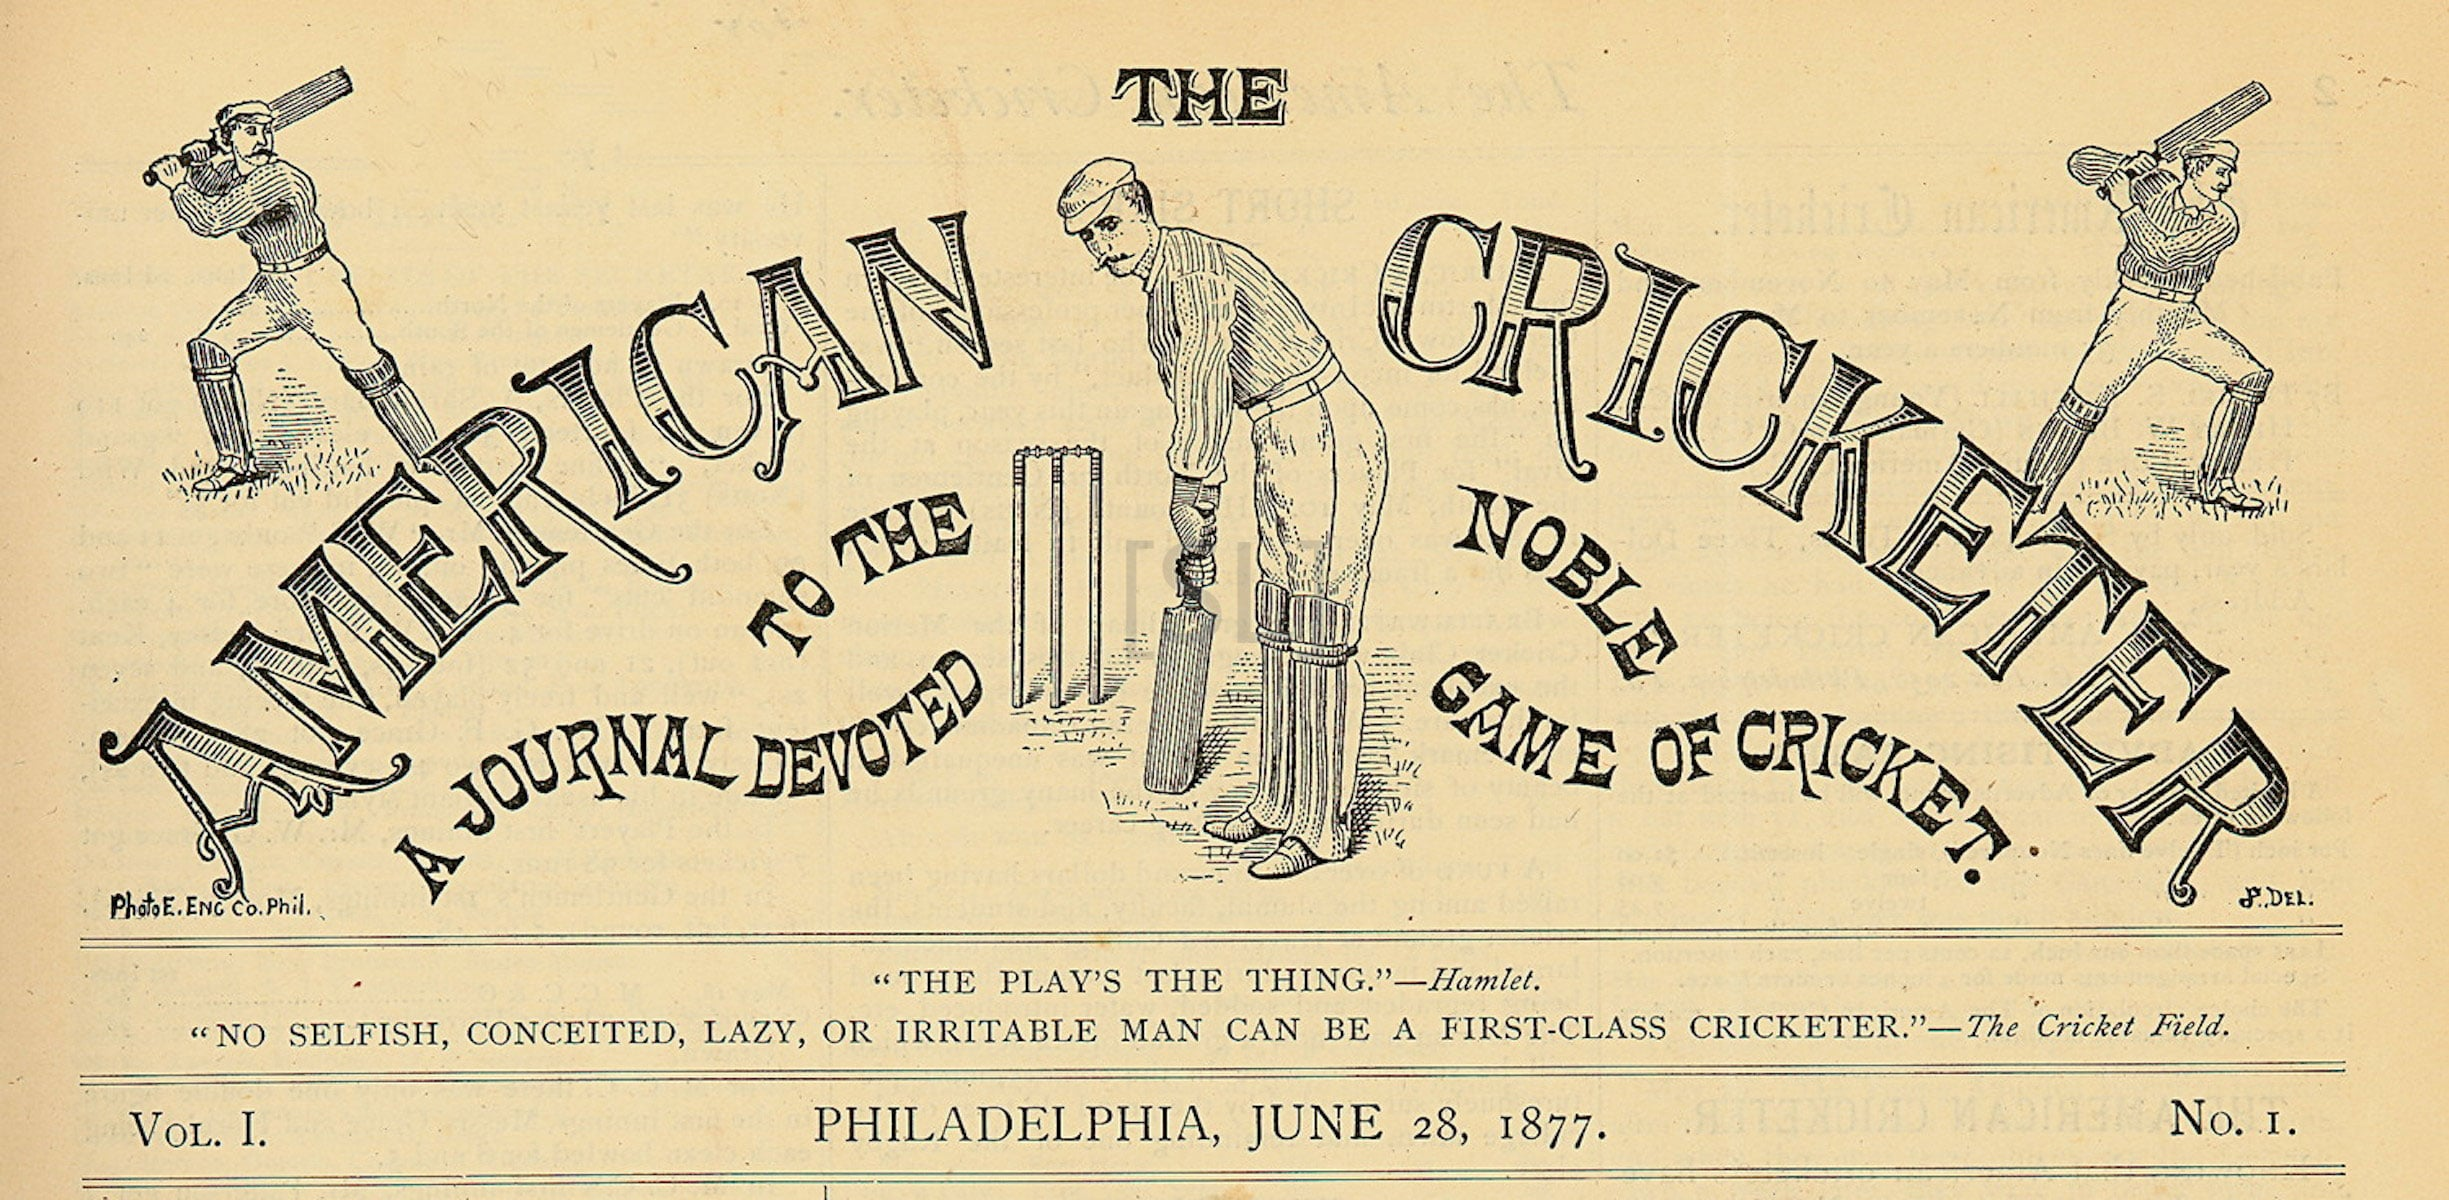 American Cricketer